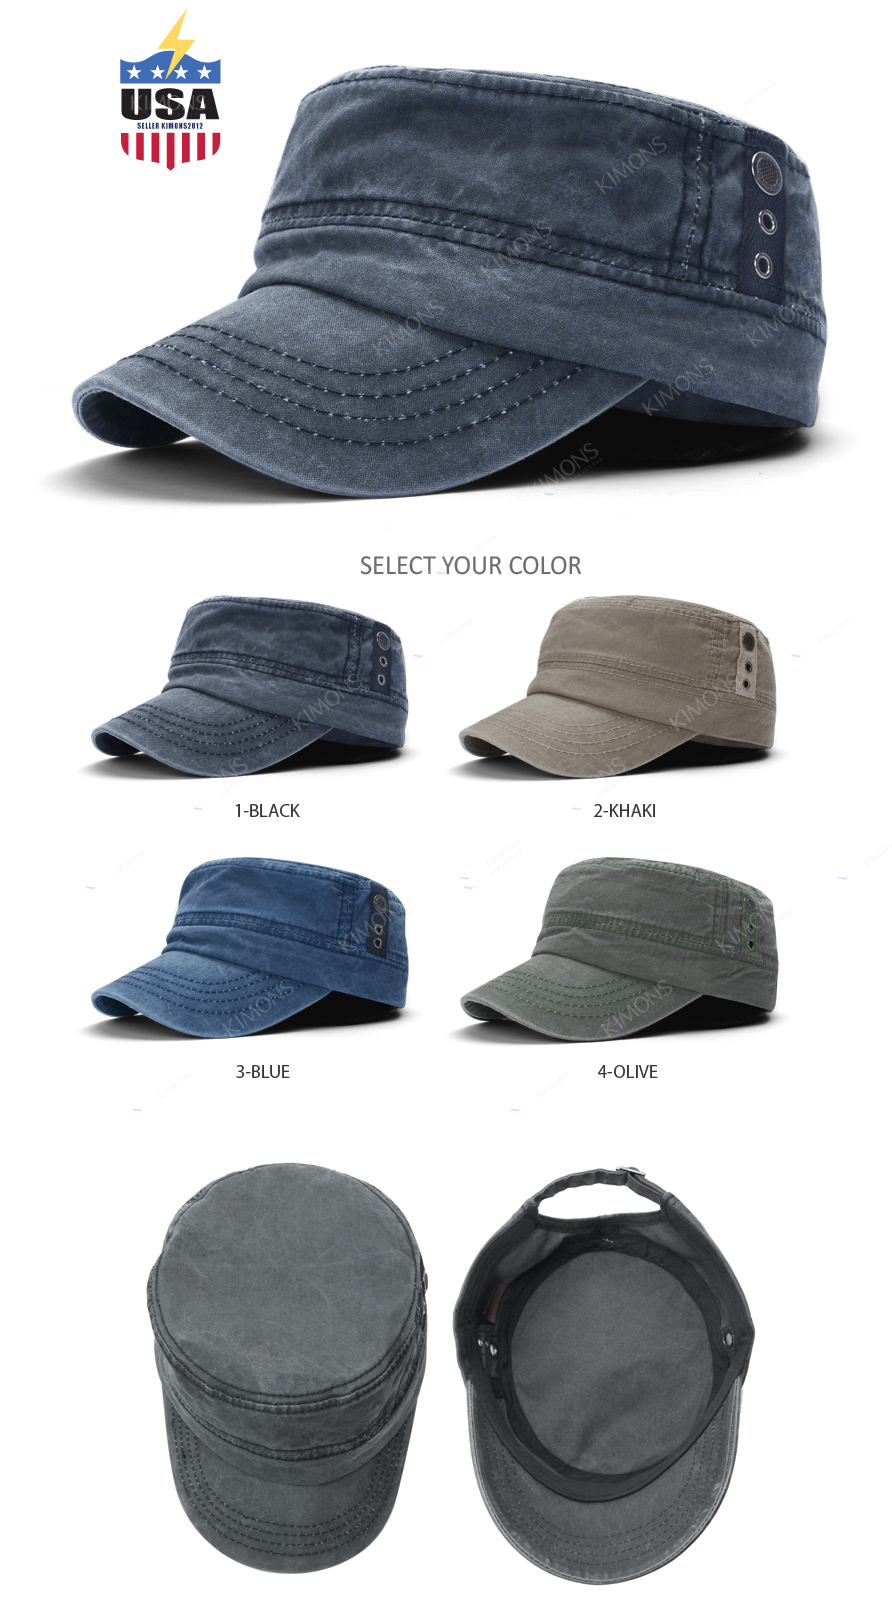 dd41778b Details about Air Cotton Army Cap Hat Men's Classic Military Cadet Patrol  Style Brim Summer